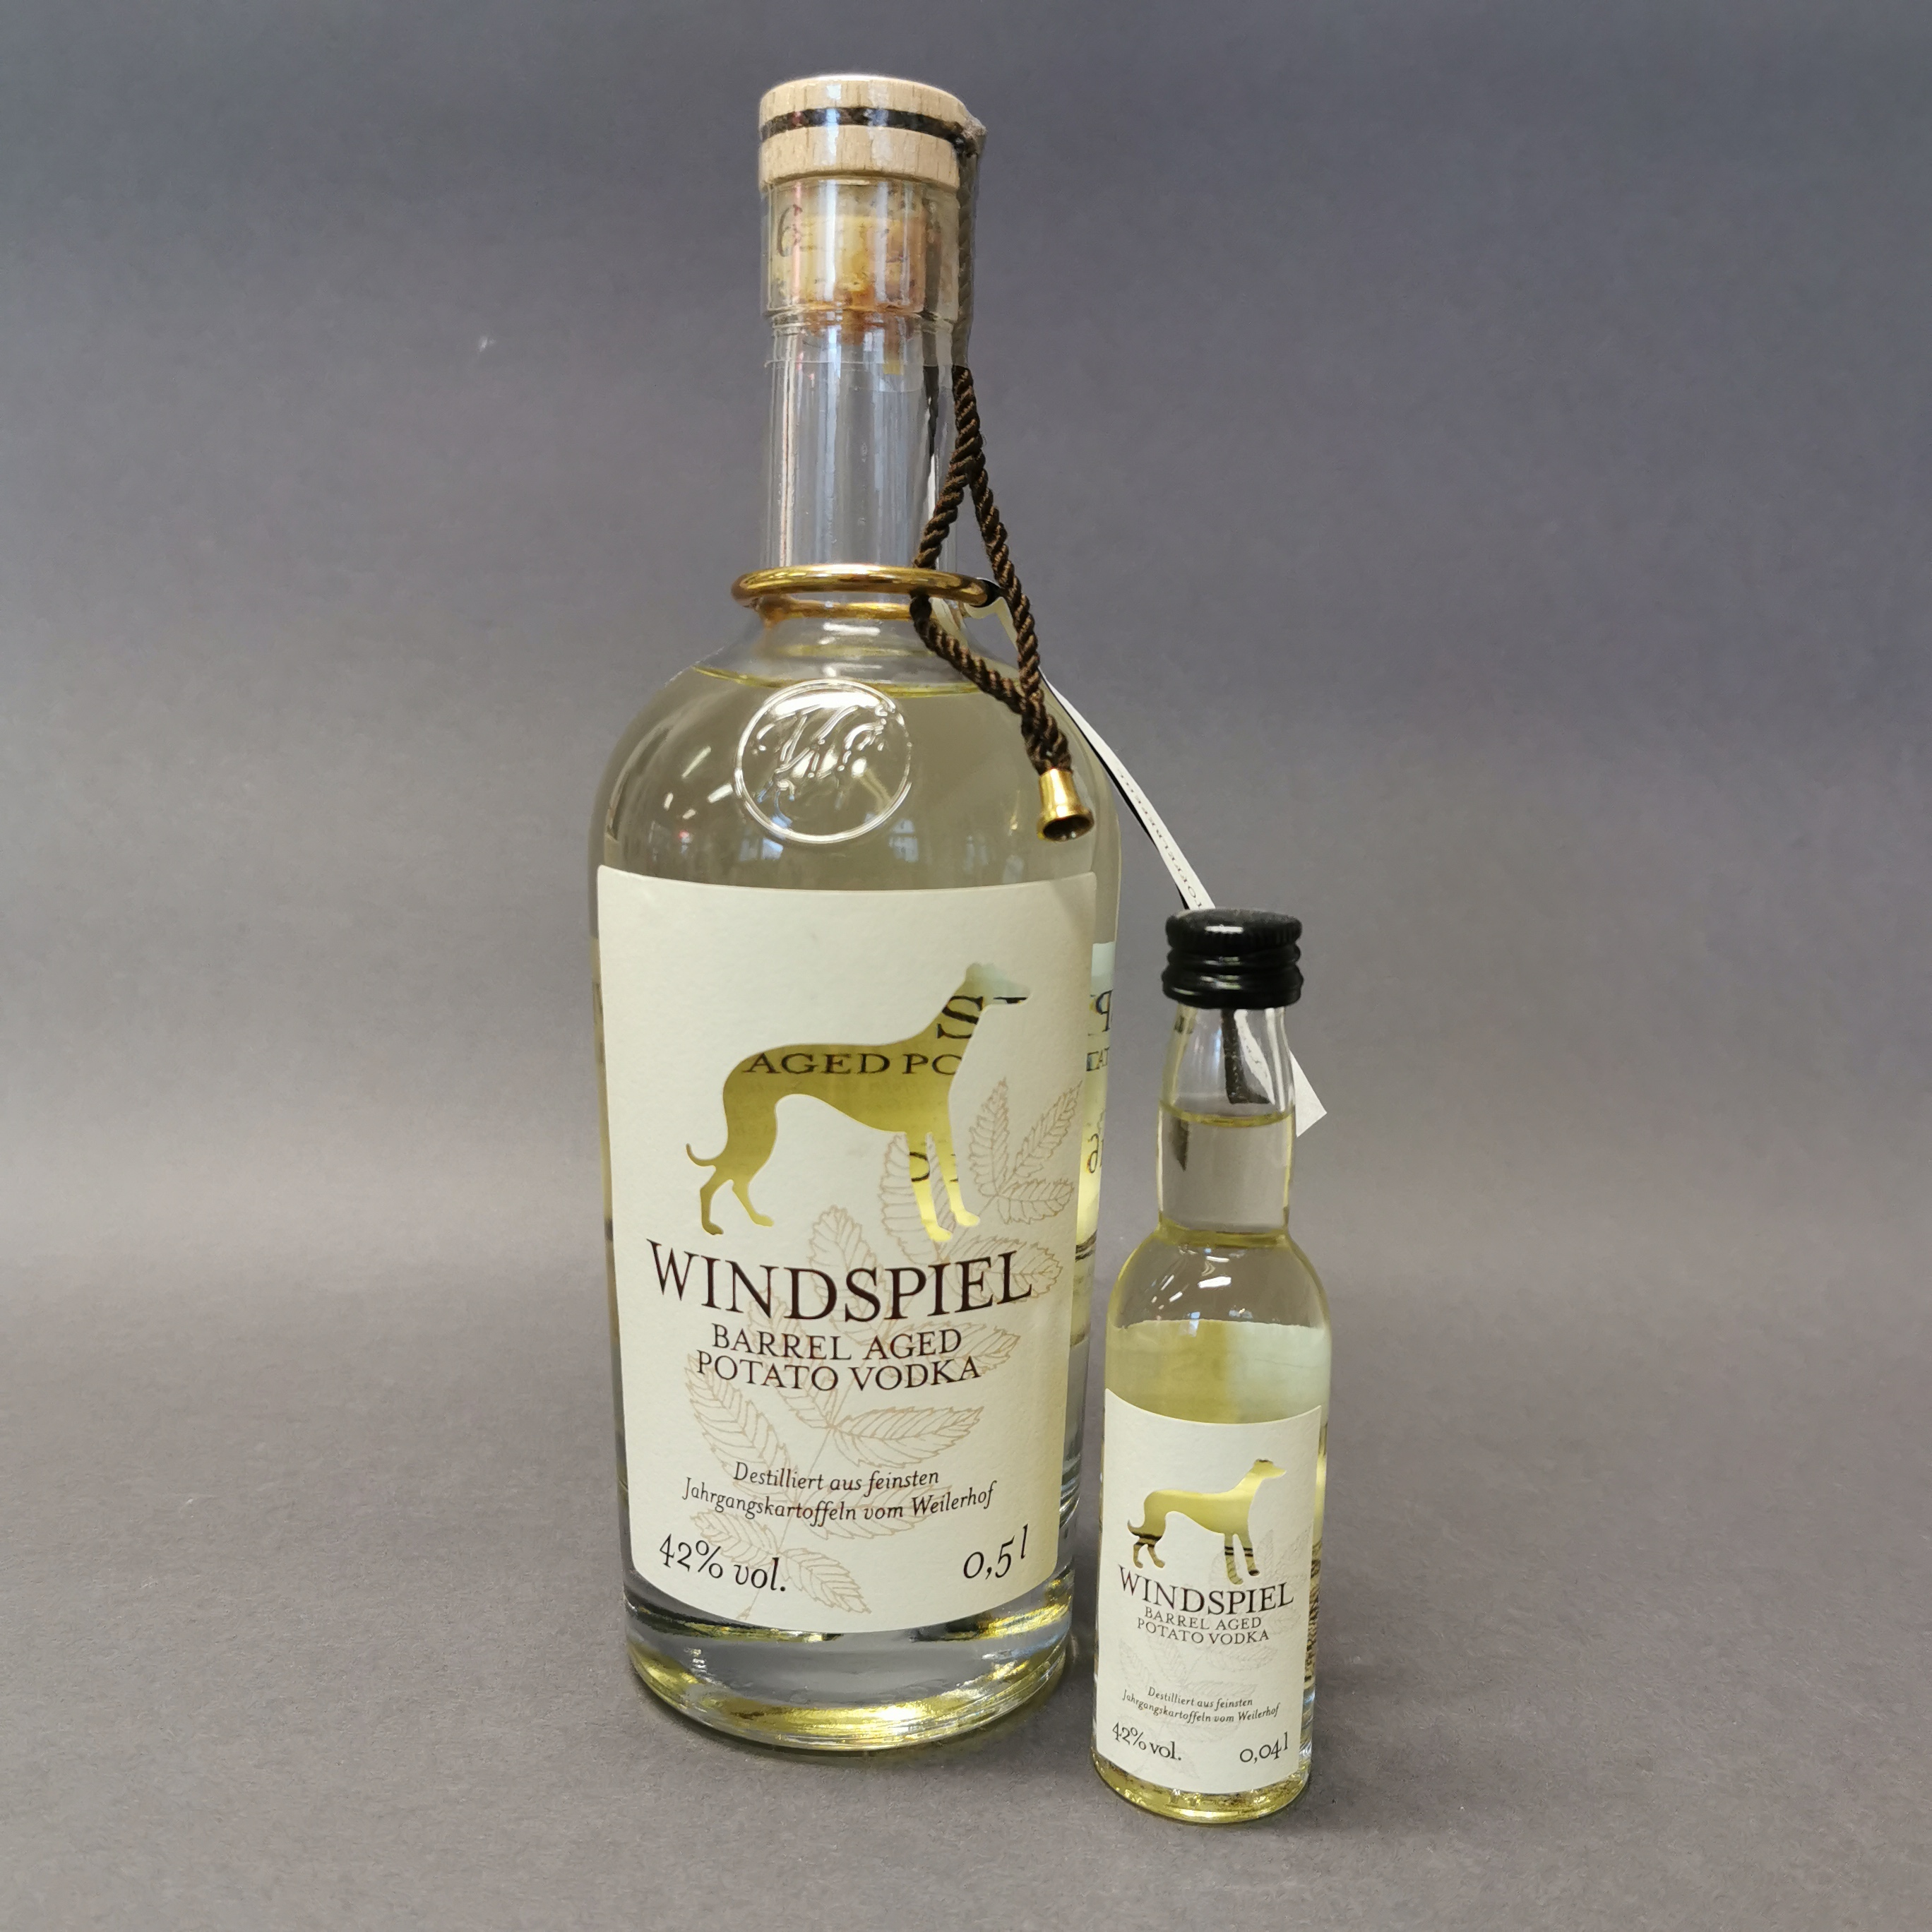 Windspiel Barrel Aged Potato Vodka